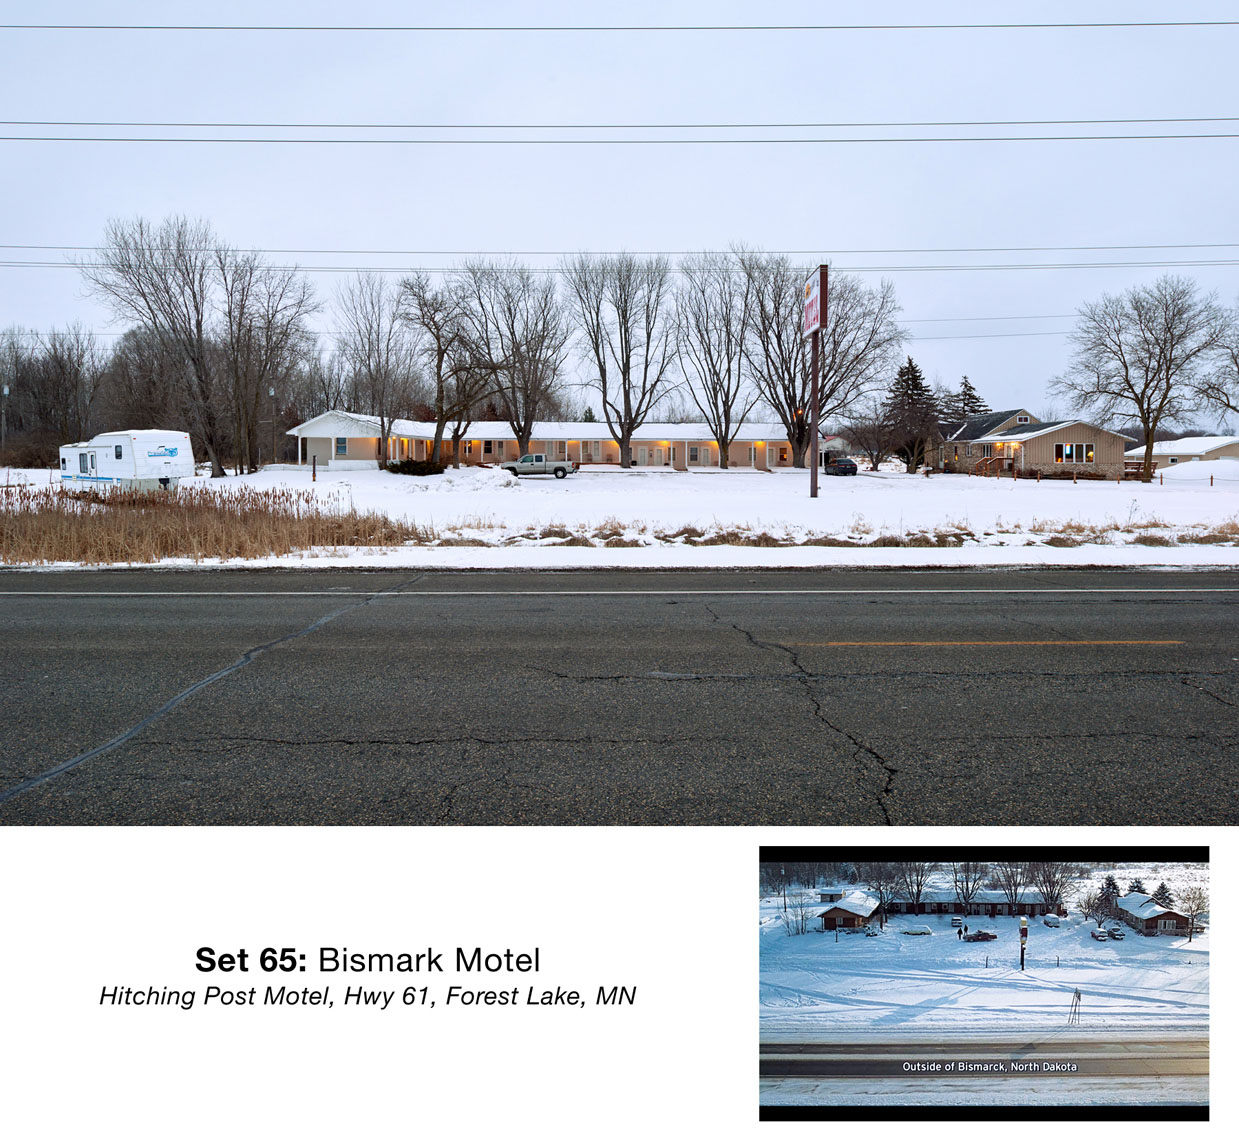 bowman_fargo-the-movie-locations-minnesota_32